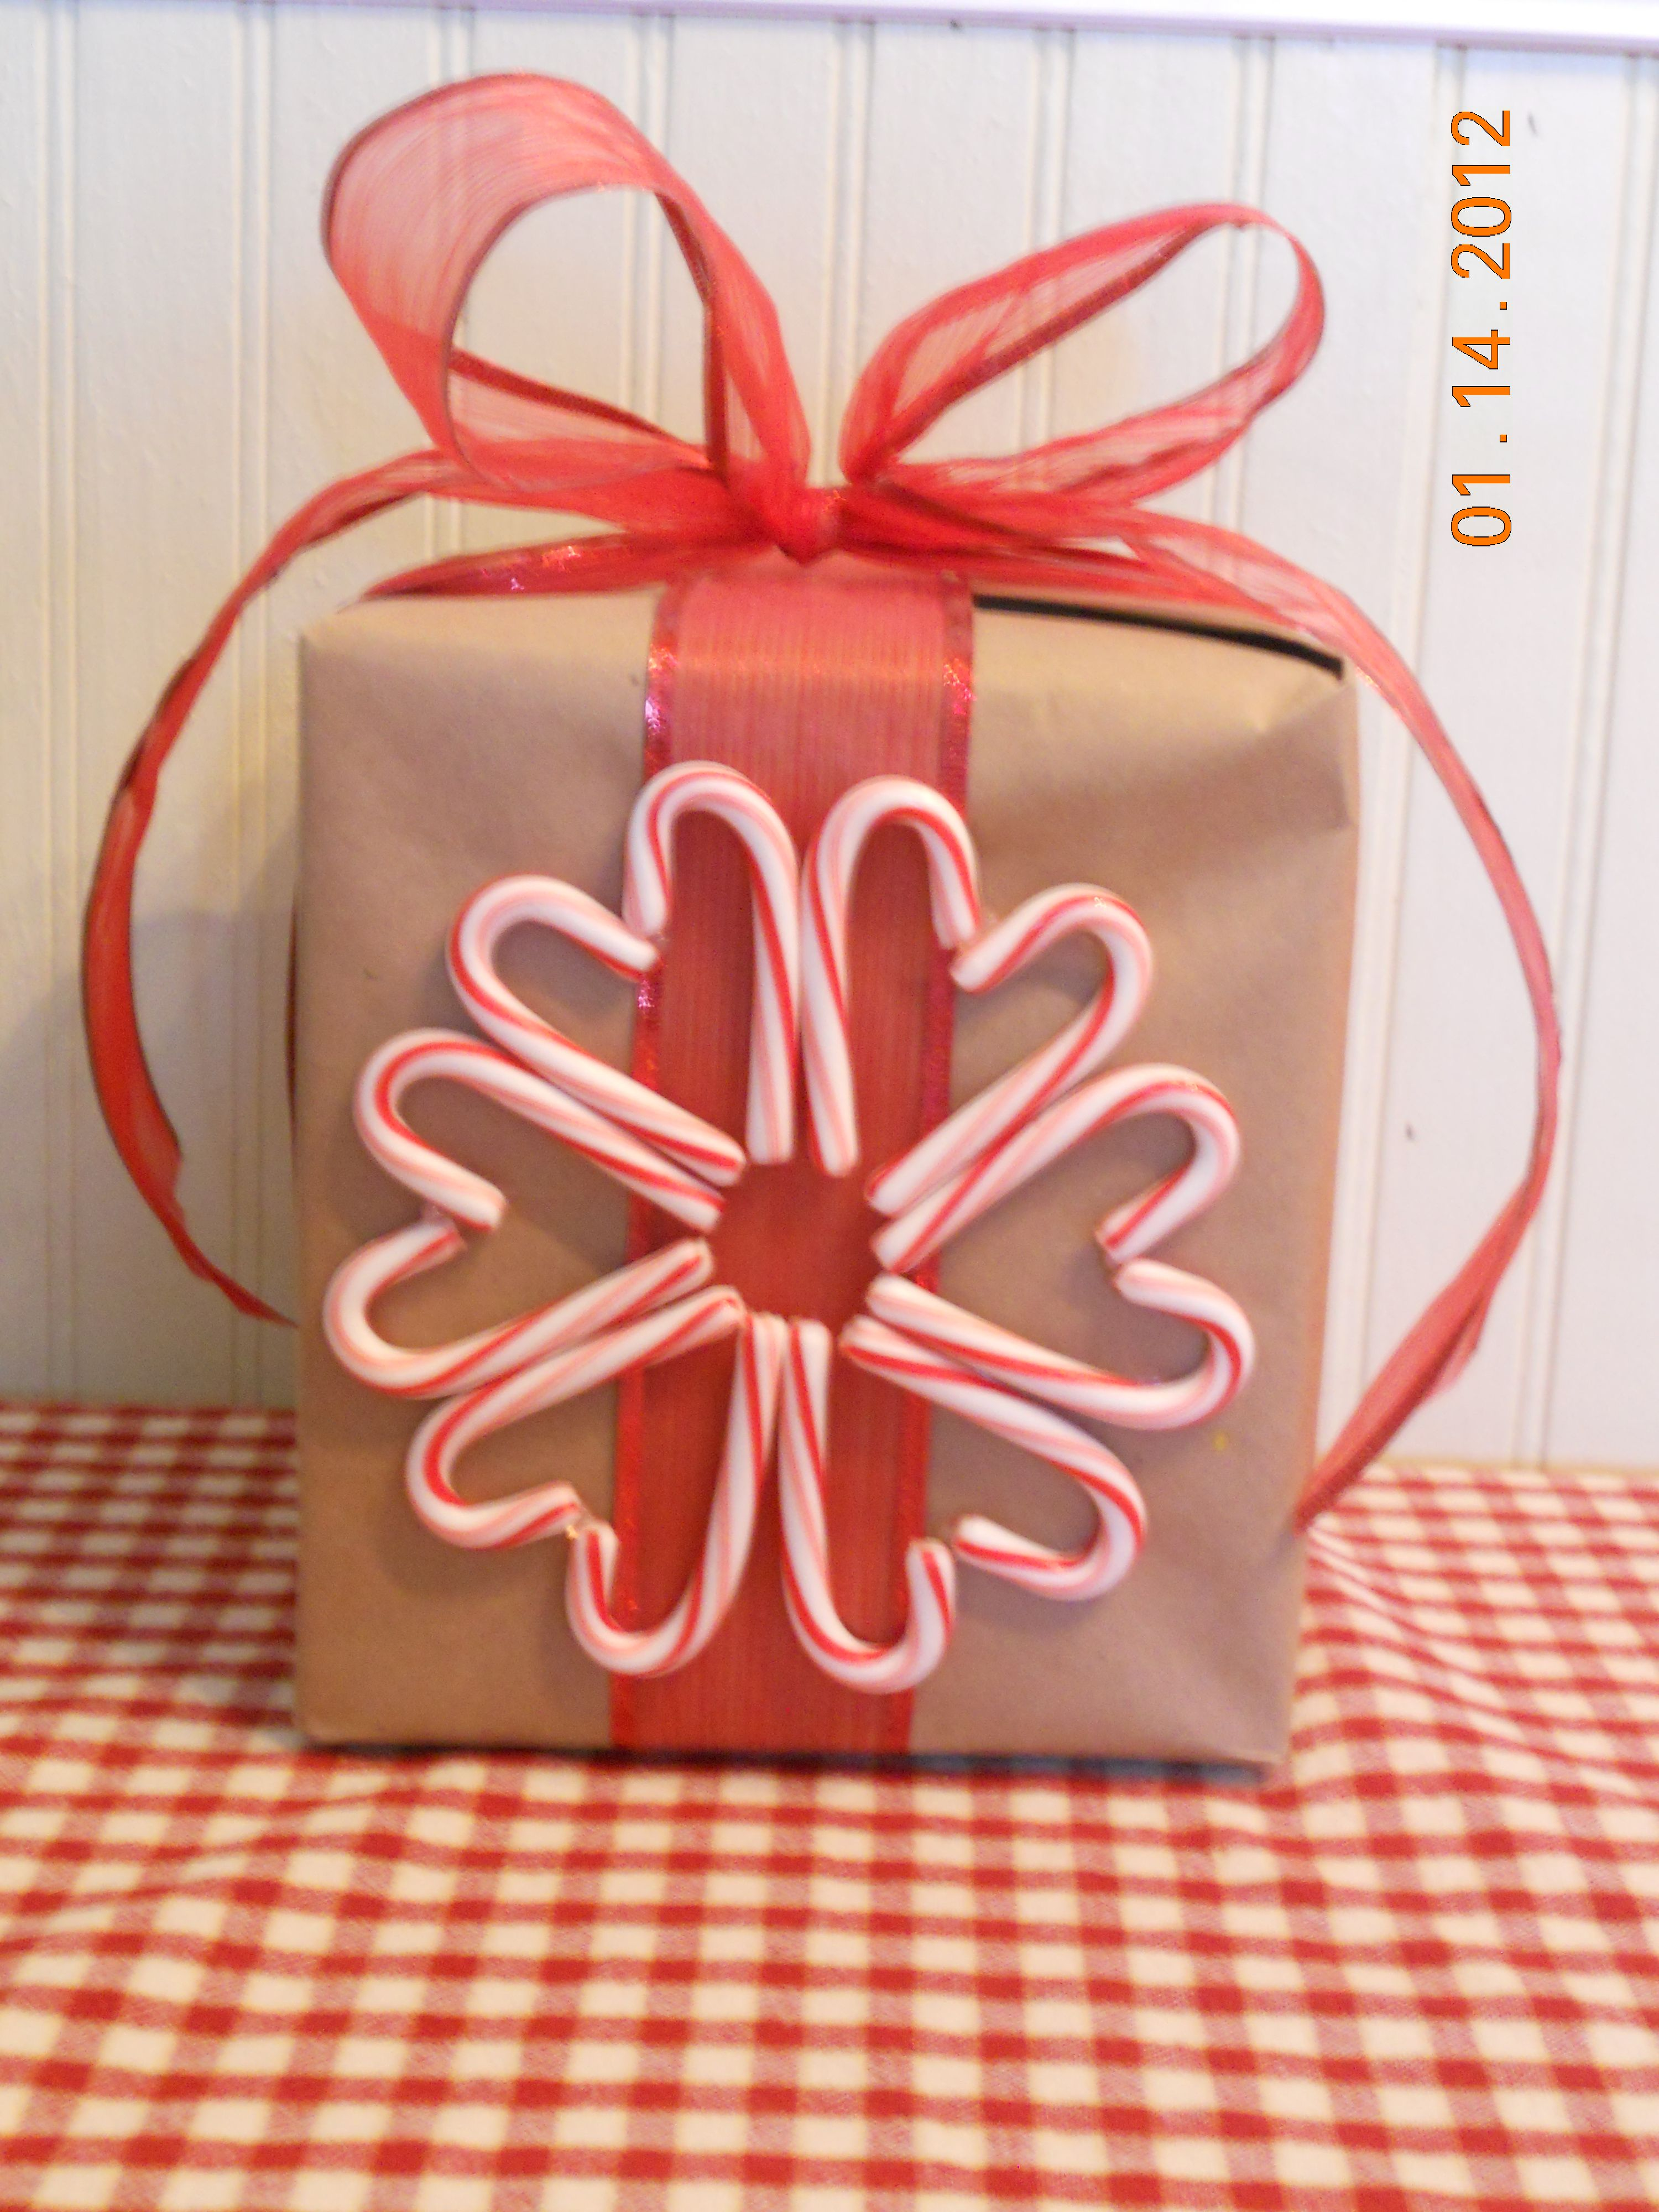 Make simple craft paper adorable gift wrap w/ pretty ribbon & a candy cane wreath! I also used candy canes in a heart shape & wrote who the gift was to and from inside it right on the paper.